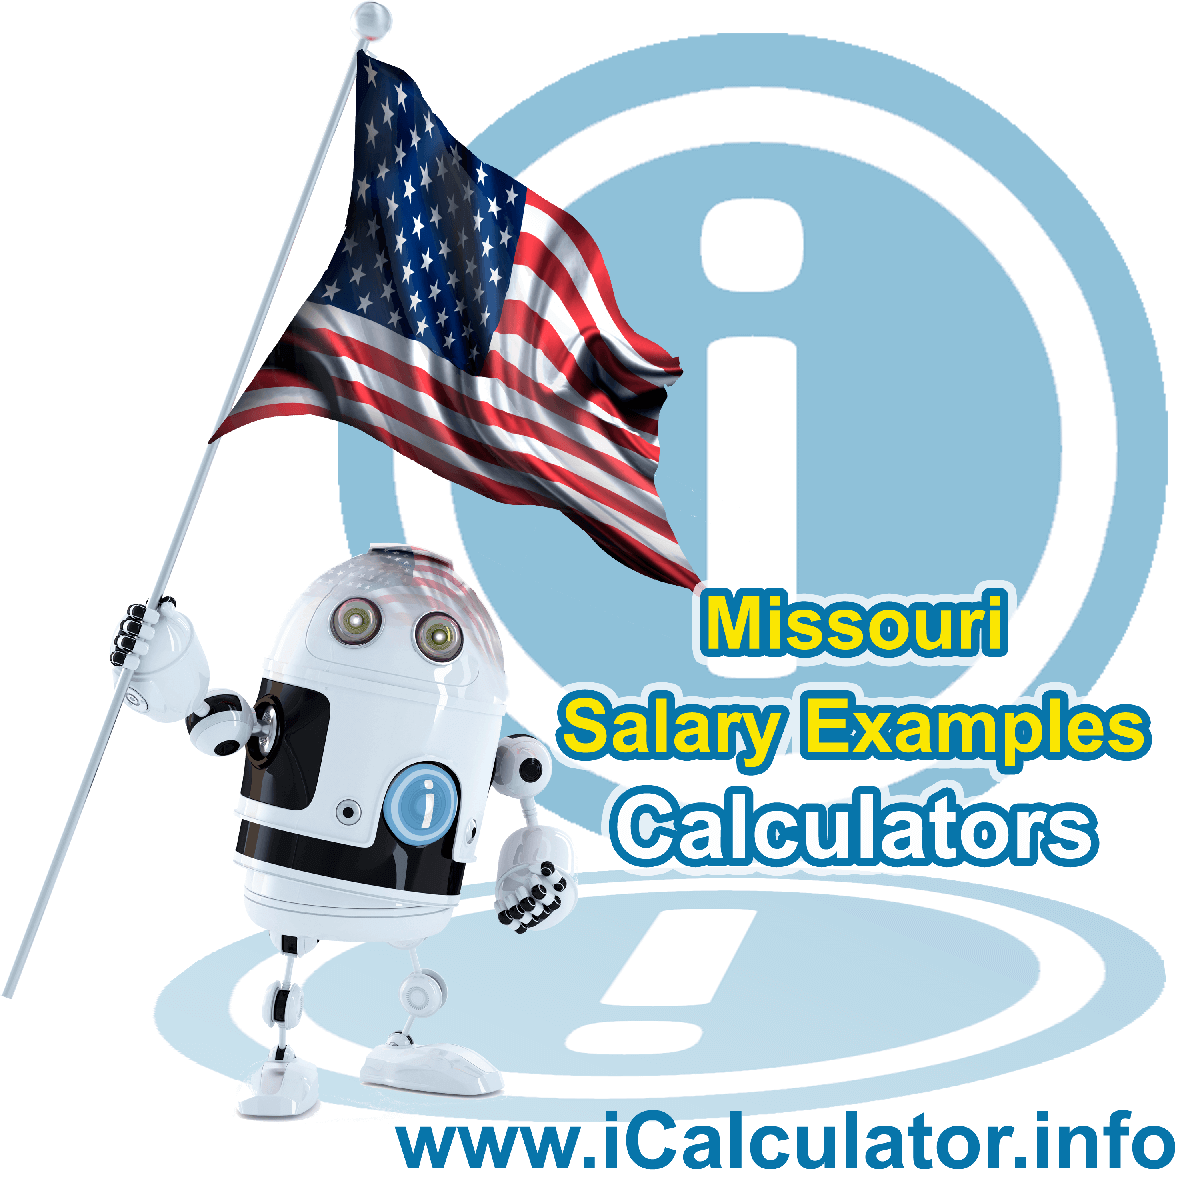 Missouri Salary Example for $155,000.00 in 2020 | iCalculator | $155,000.00 salary example for employee and employer paying Missouri State tincome taxes. Detailed salary after tax calculation including Missouri State Tax, Federal State Tax, Medicare Deductions, Social Security, Capital Gains and other income tax and salary deductions complete with supporting Missouri state tax tables